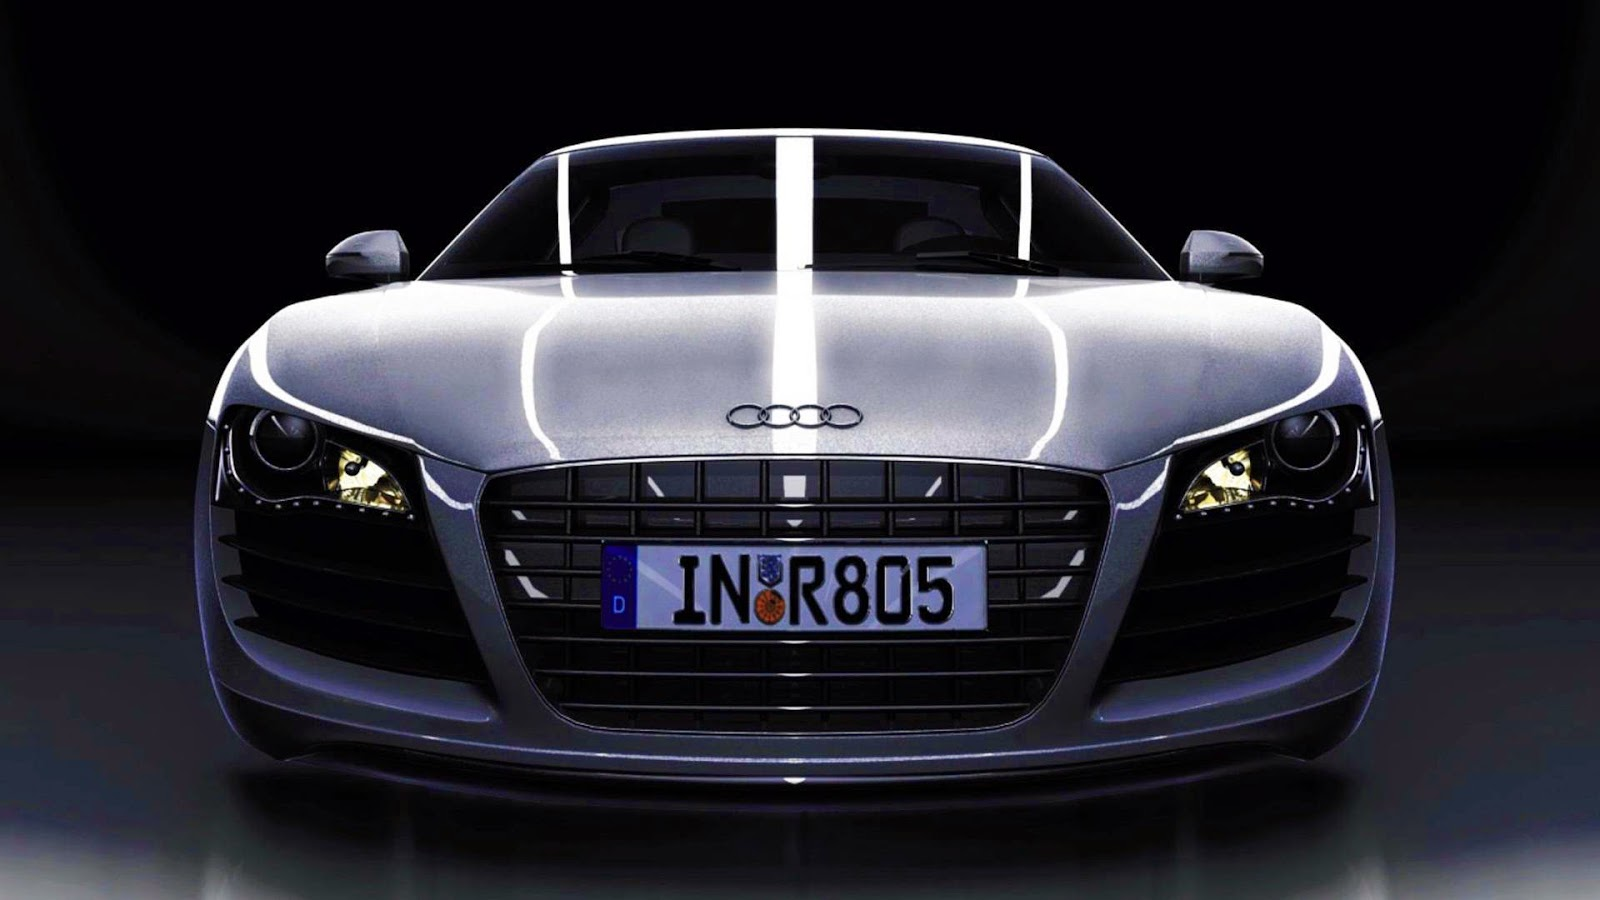 Best Cars In The World Download Audi Cars Model Pictures For PC - Best audi car model